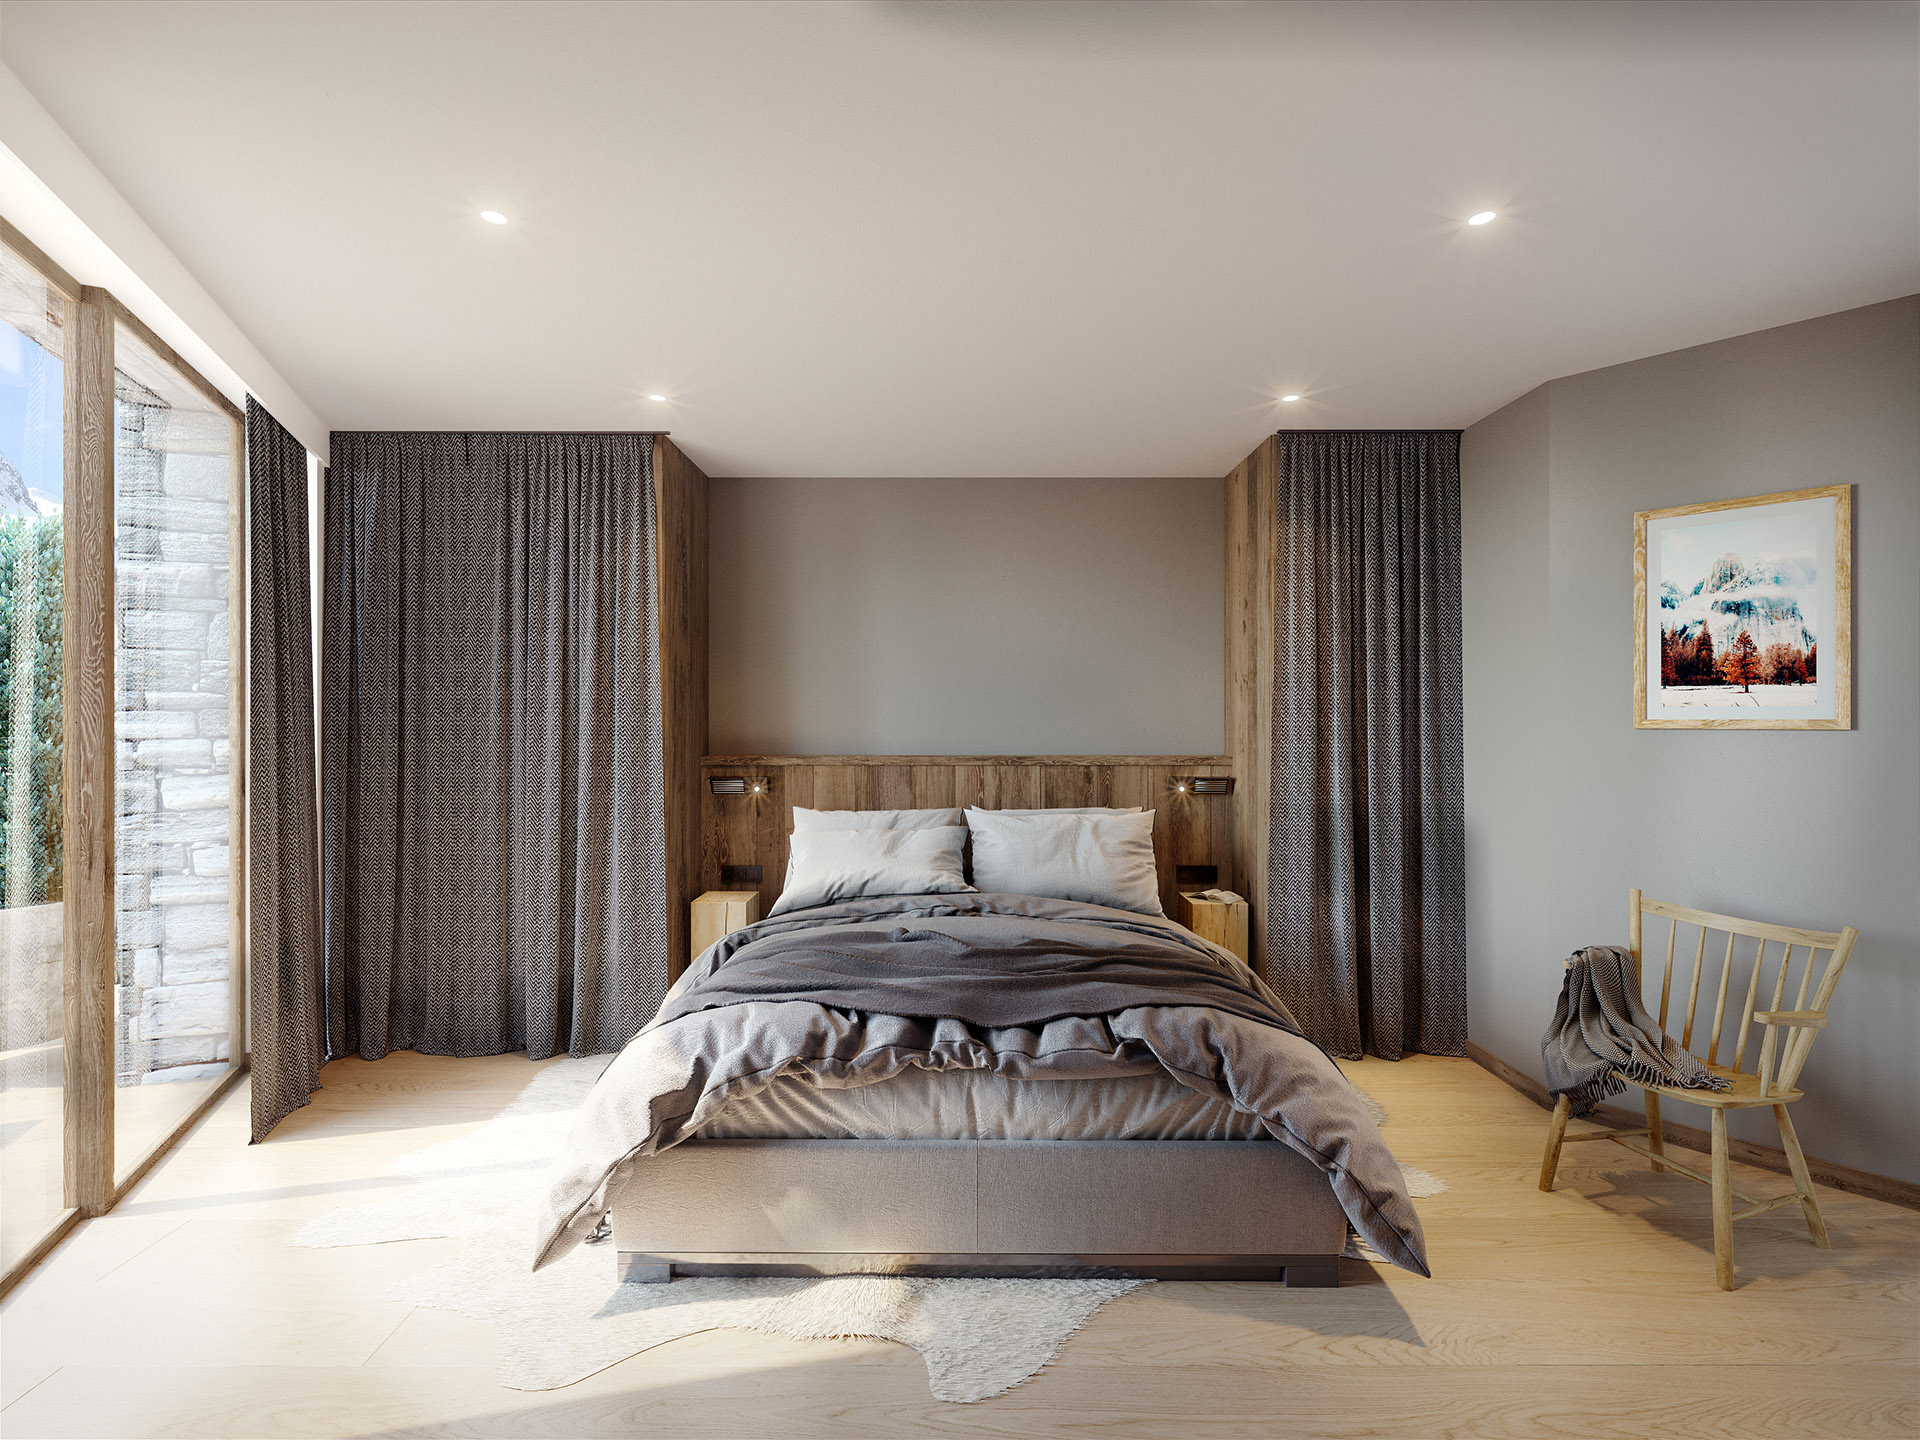 3D visualization of a modern bedroom in a chalet